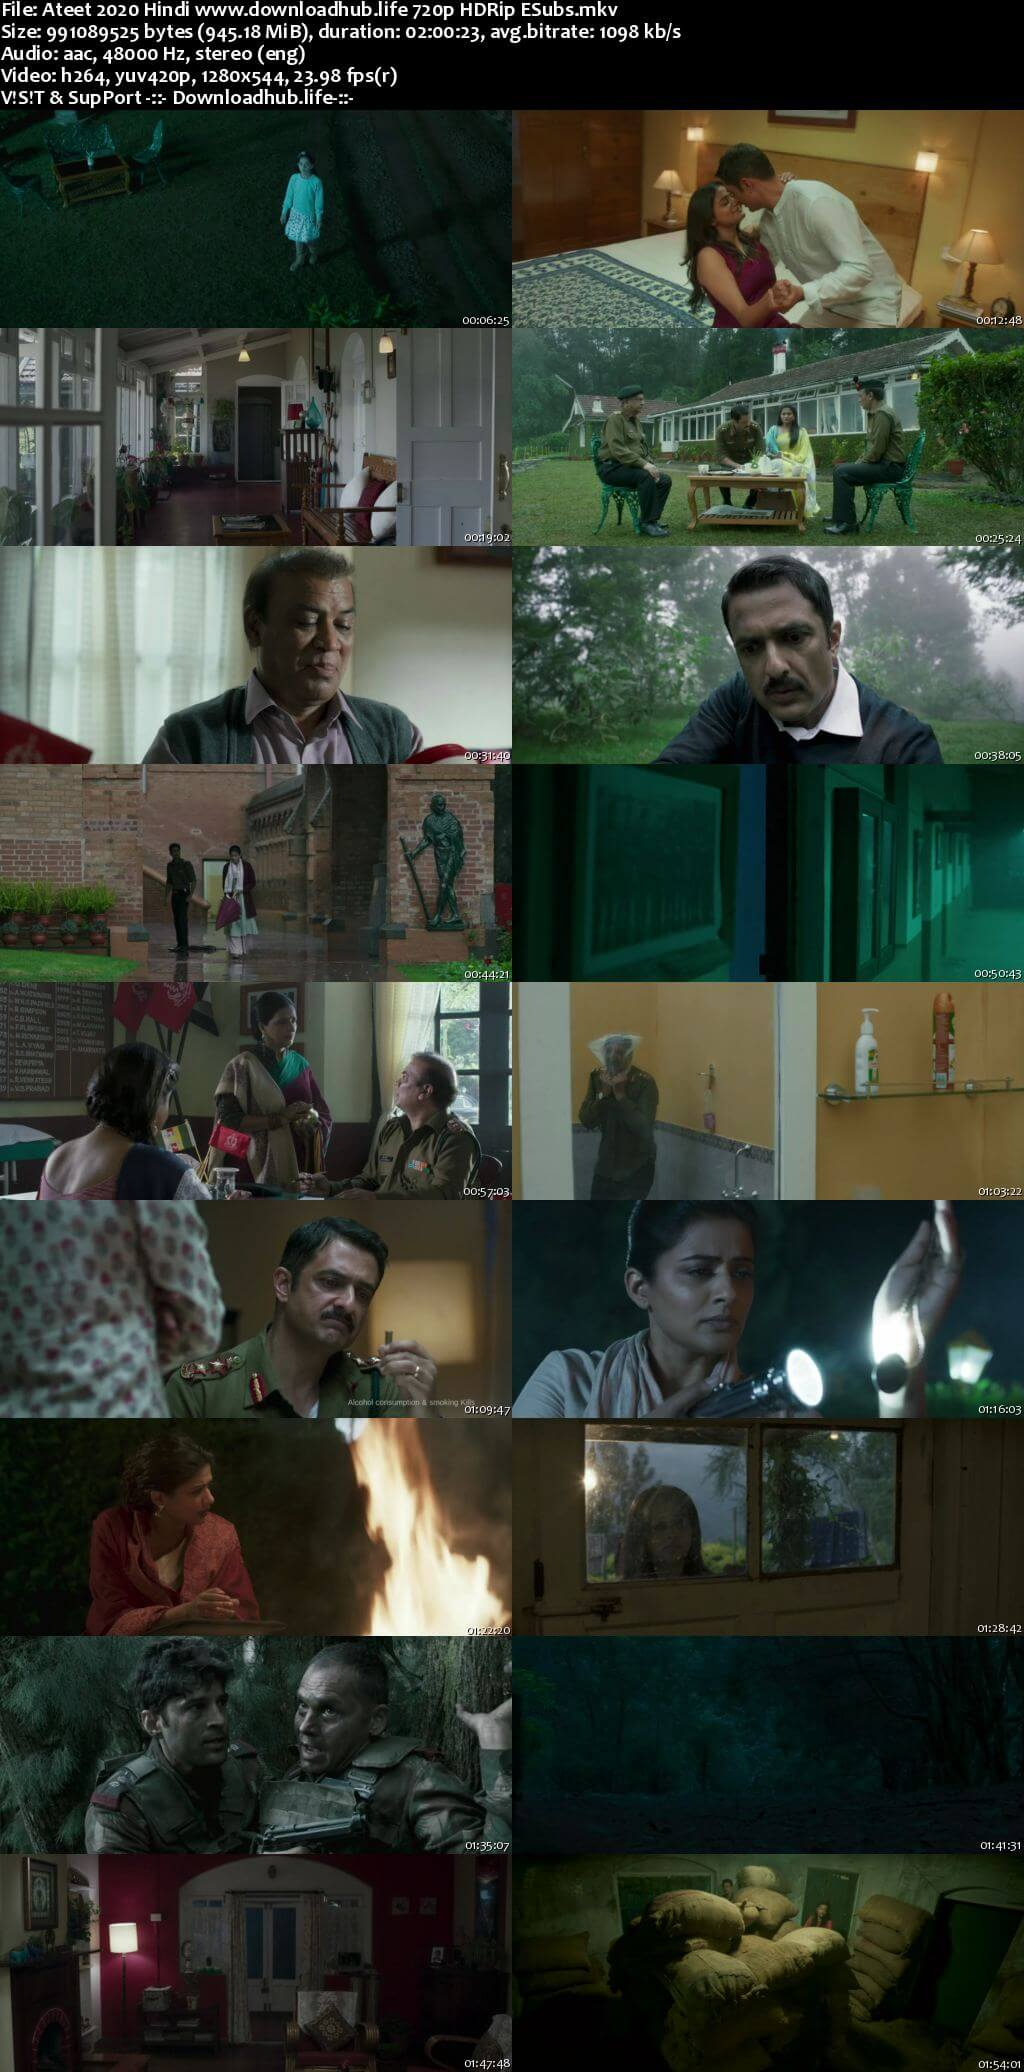 Ateet 2020 Hindi 720p HDRip ESubs